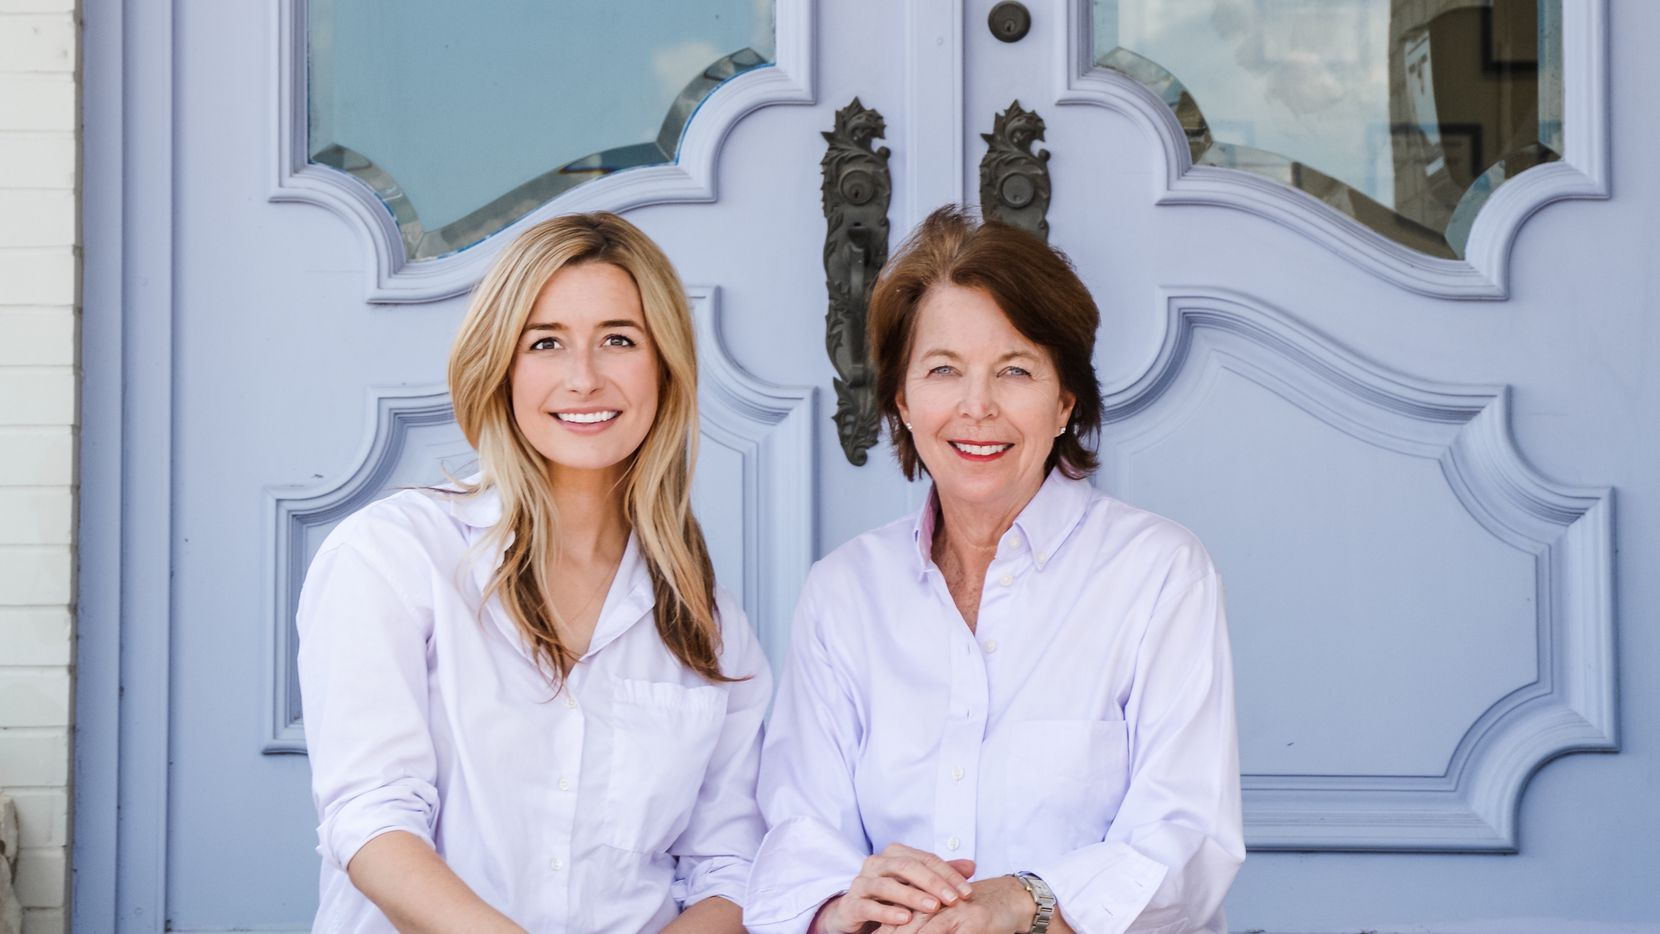 Connie Kleinert Babikian (left) is taking over as the new majority owner and president of The Pillow Bar from founder Merrimac Dillon. Dillon started the Dallas-based company in 2008.